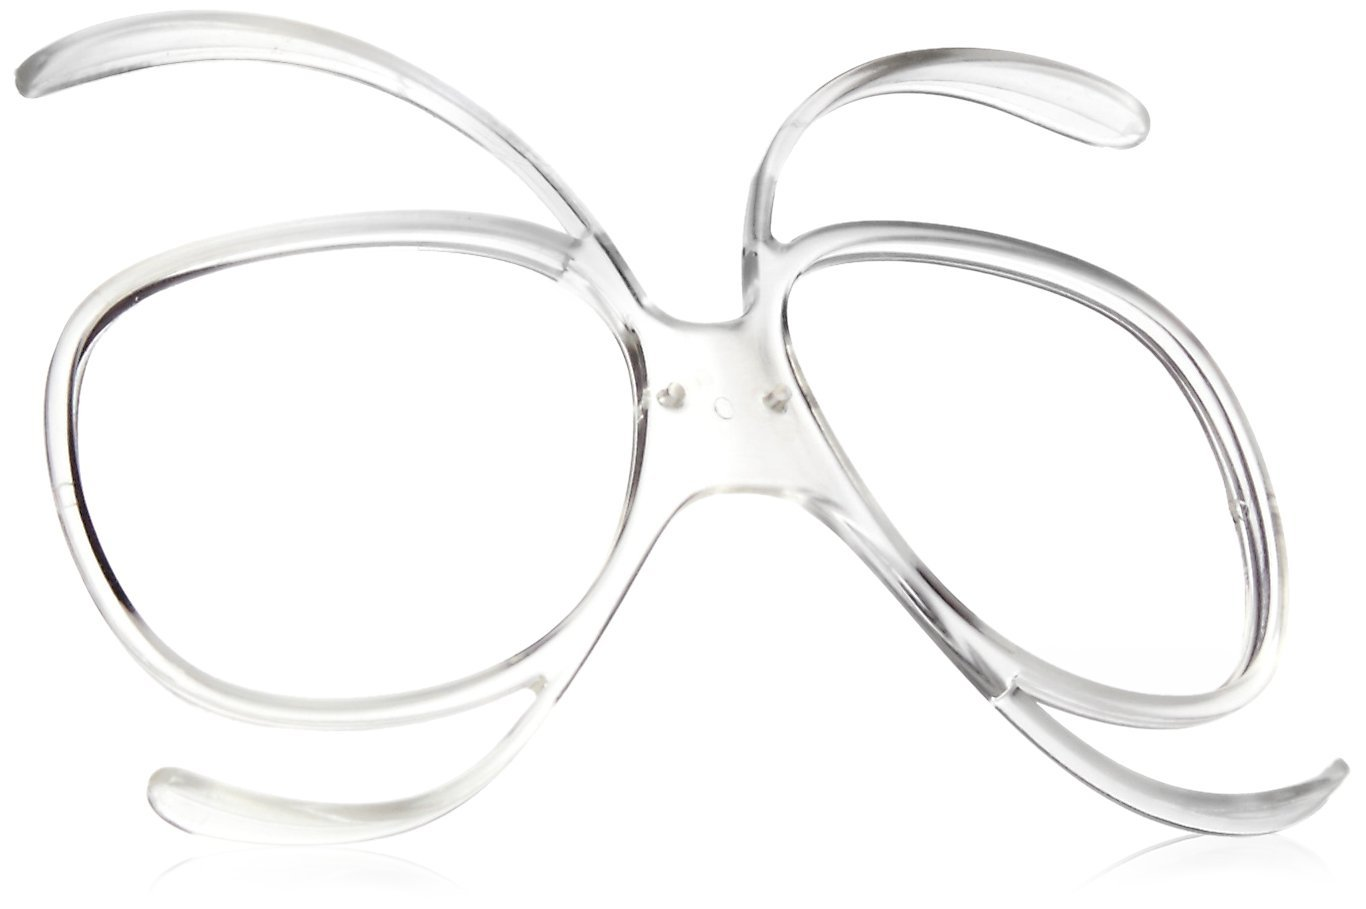 universal prescription goggle inserts